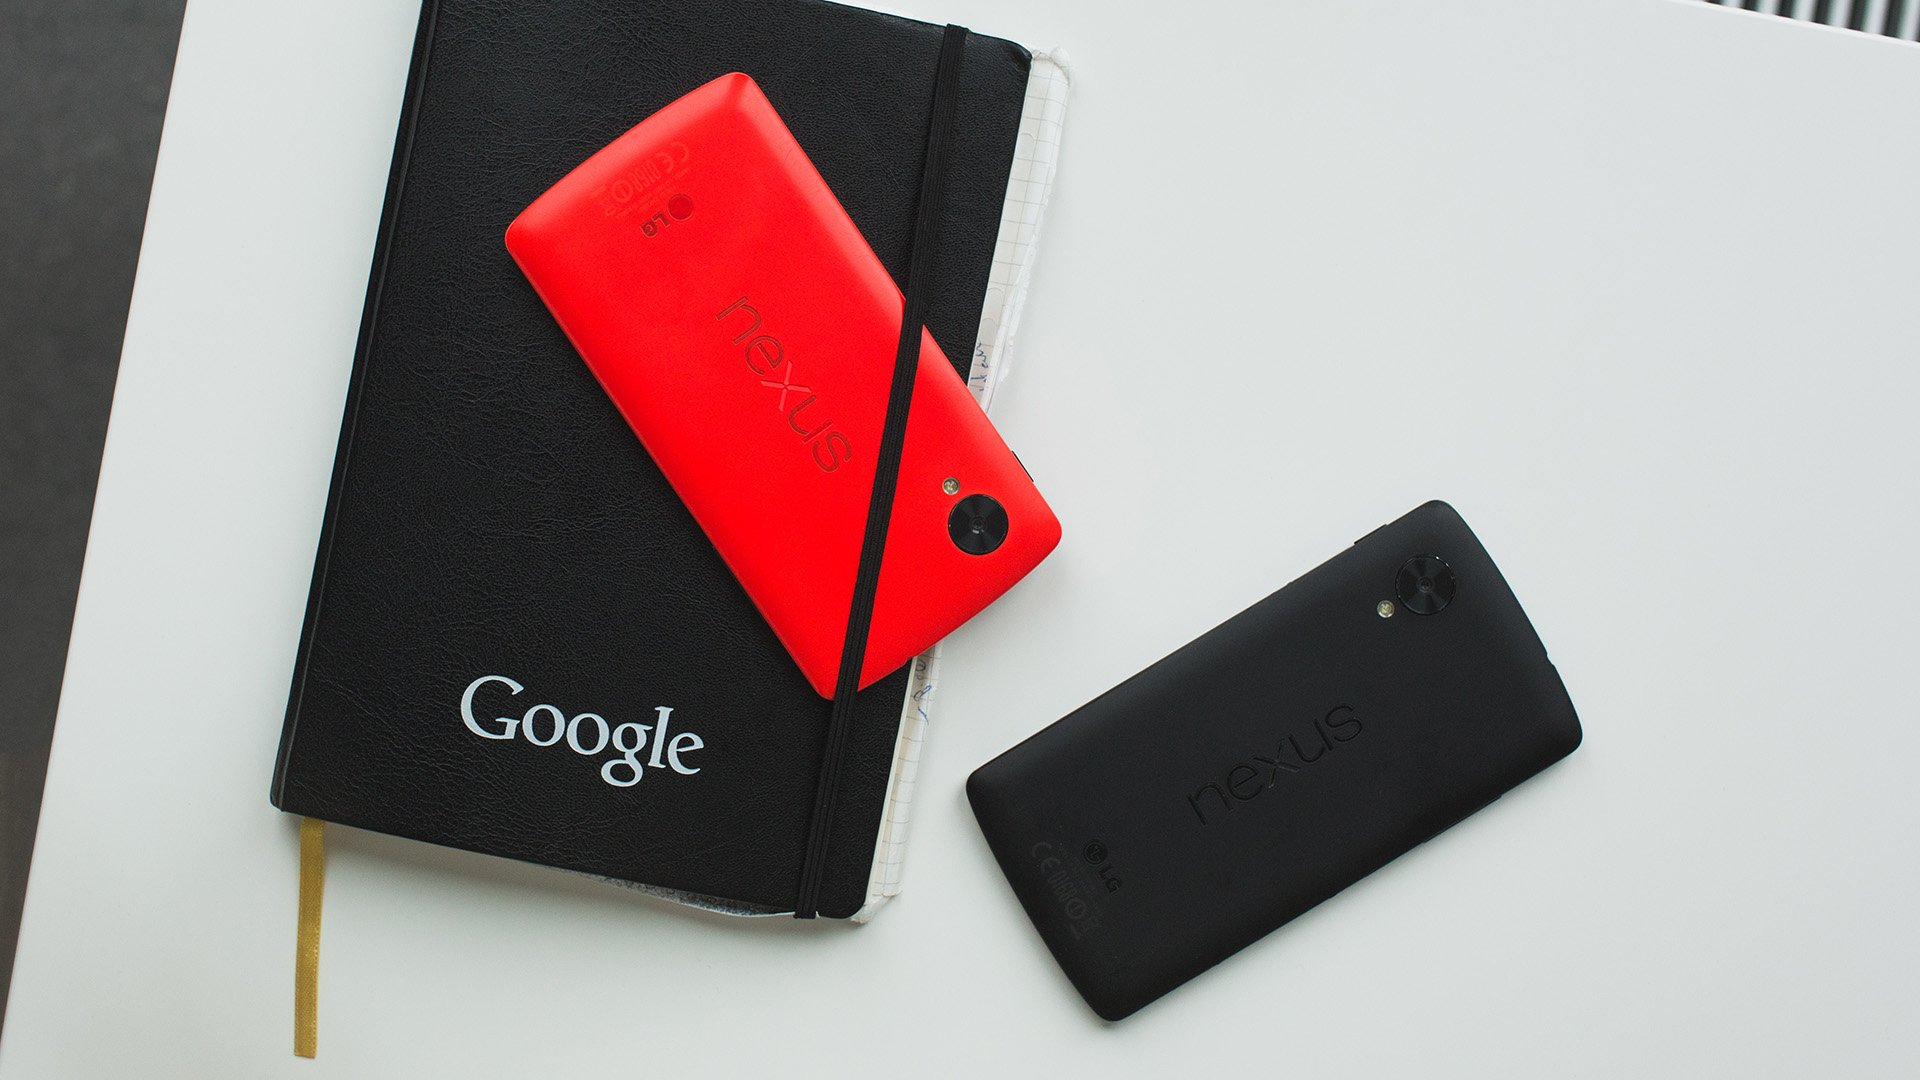 Common Nexus 5 problems and how to fix them